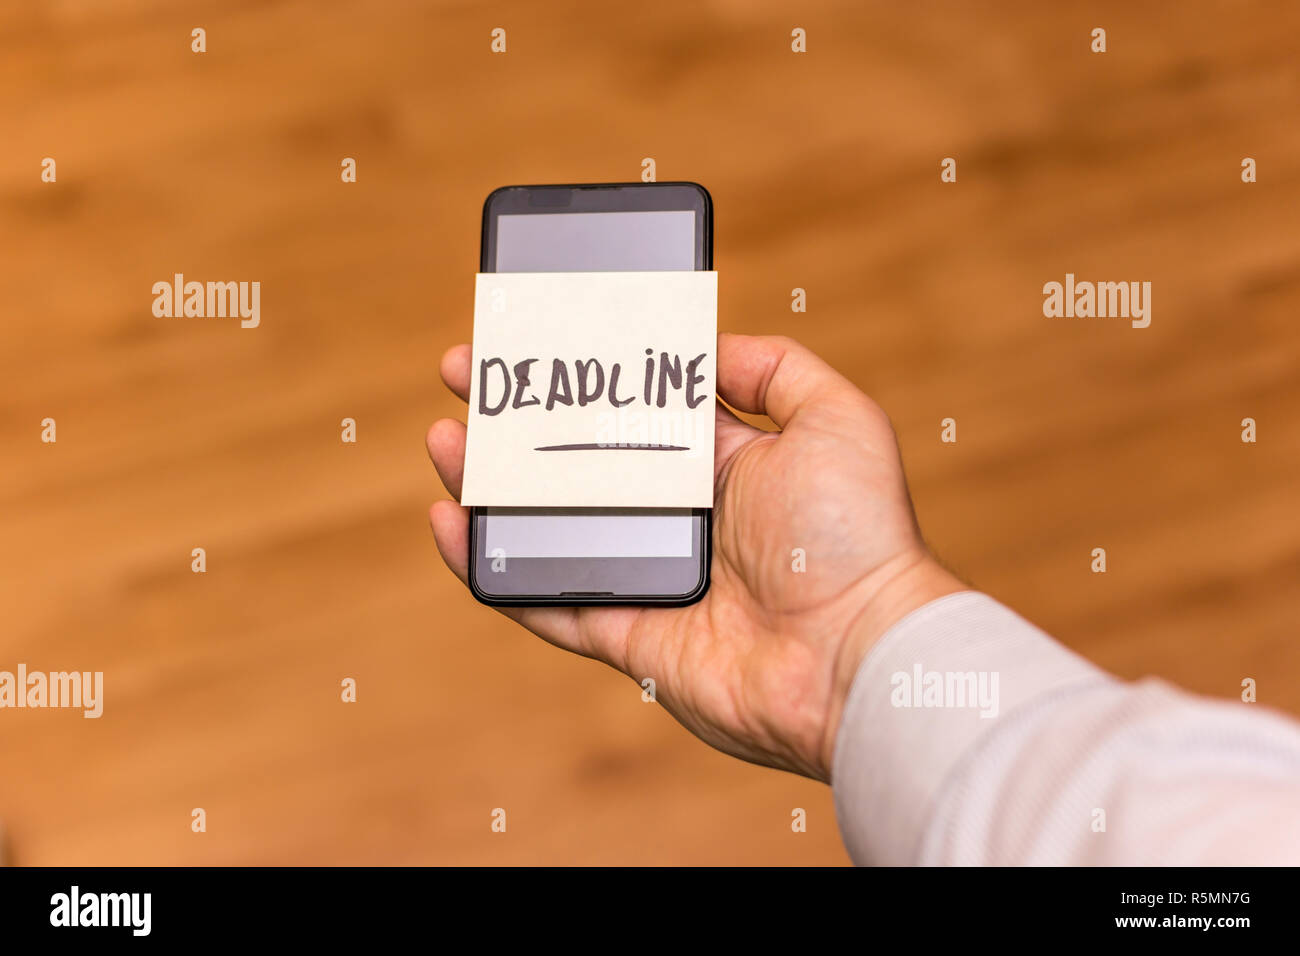 Human hand holding a smartphone with yellow note sticked on it. The word deadliner is written on the note. - Stock Image